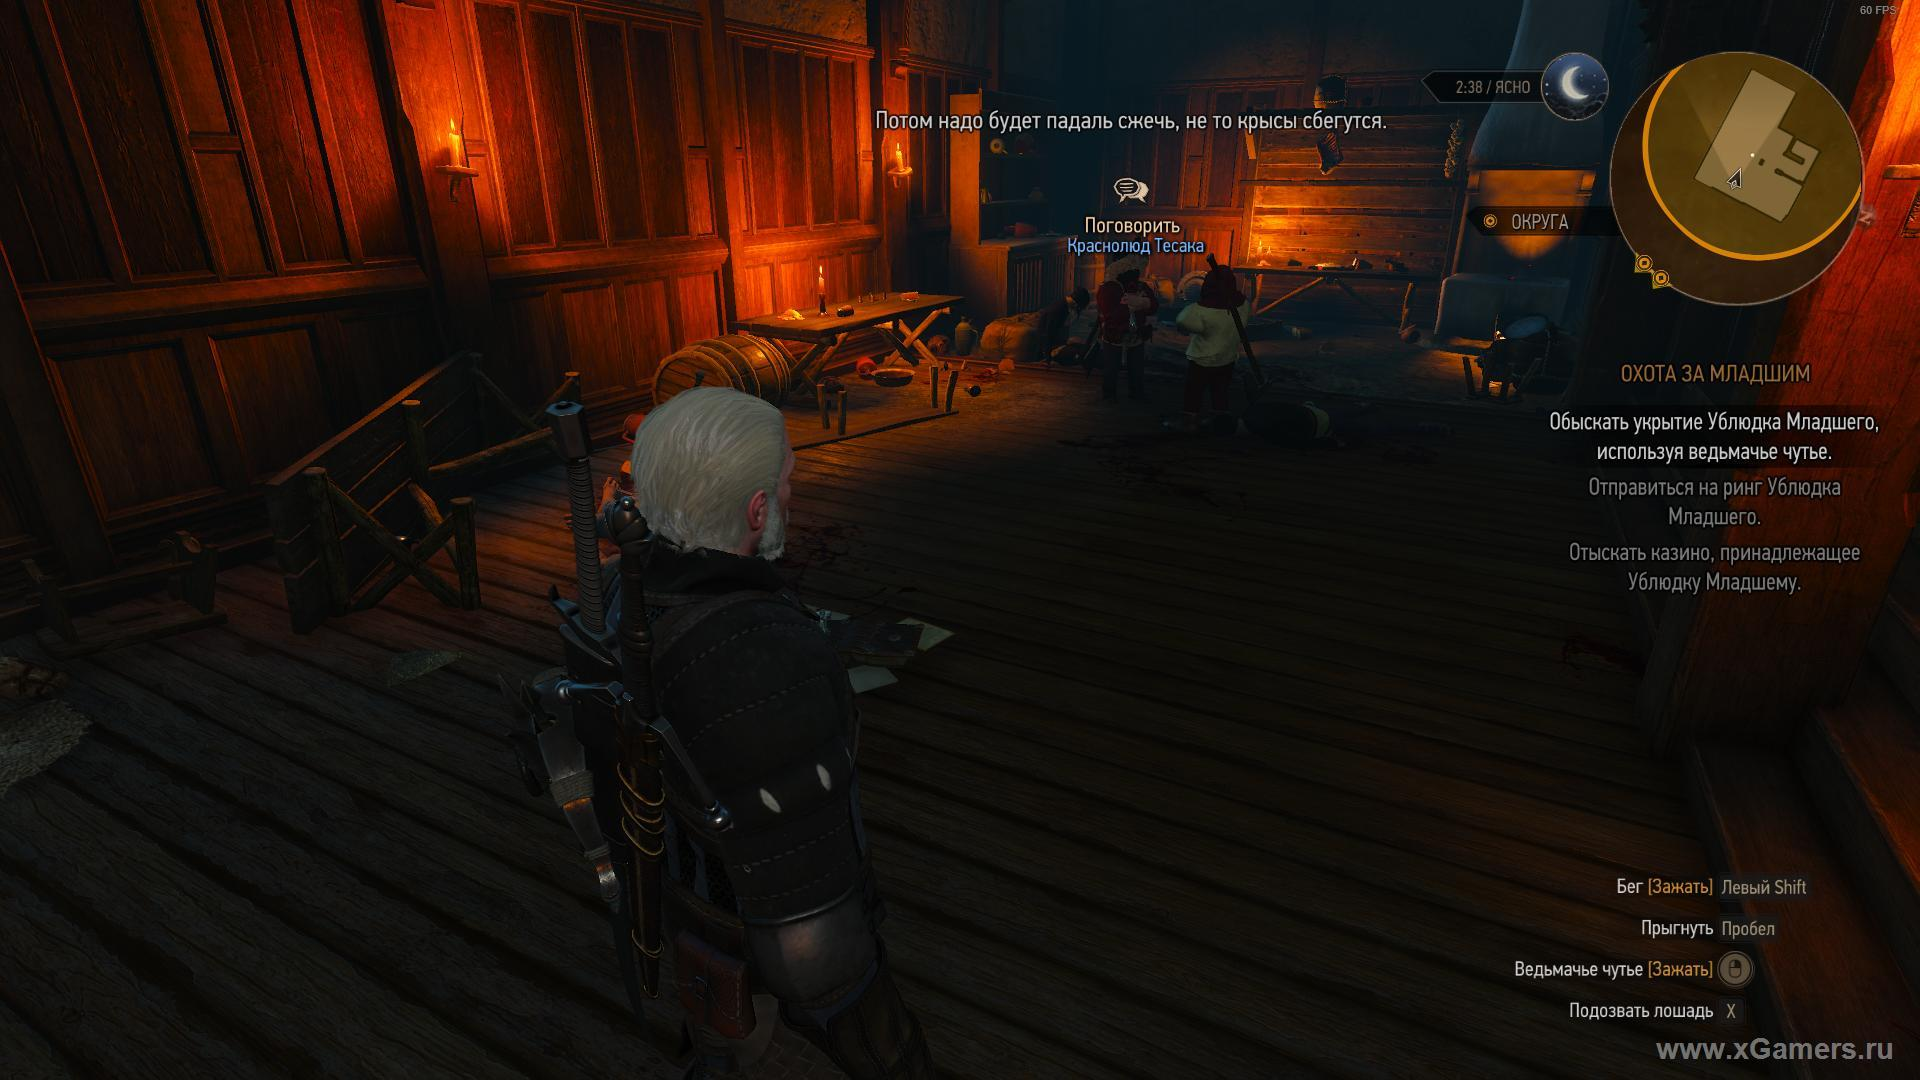 House of Bastard Jr. in Novigrad